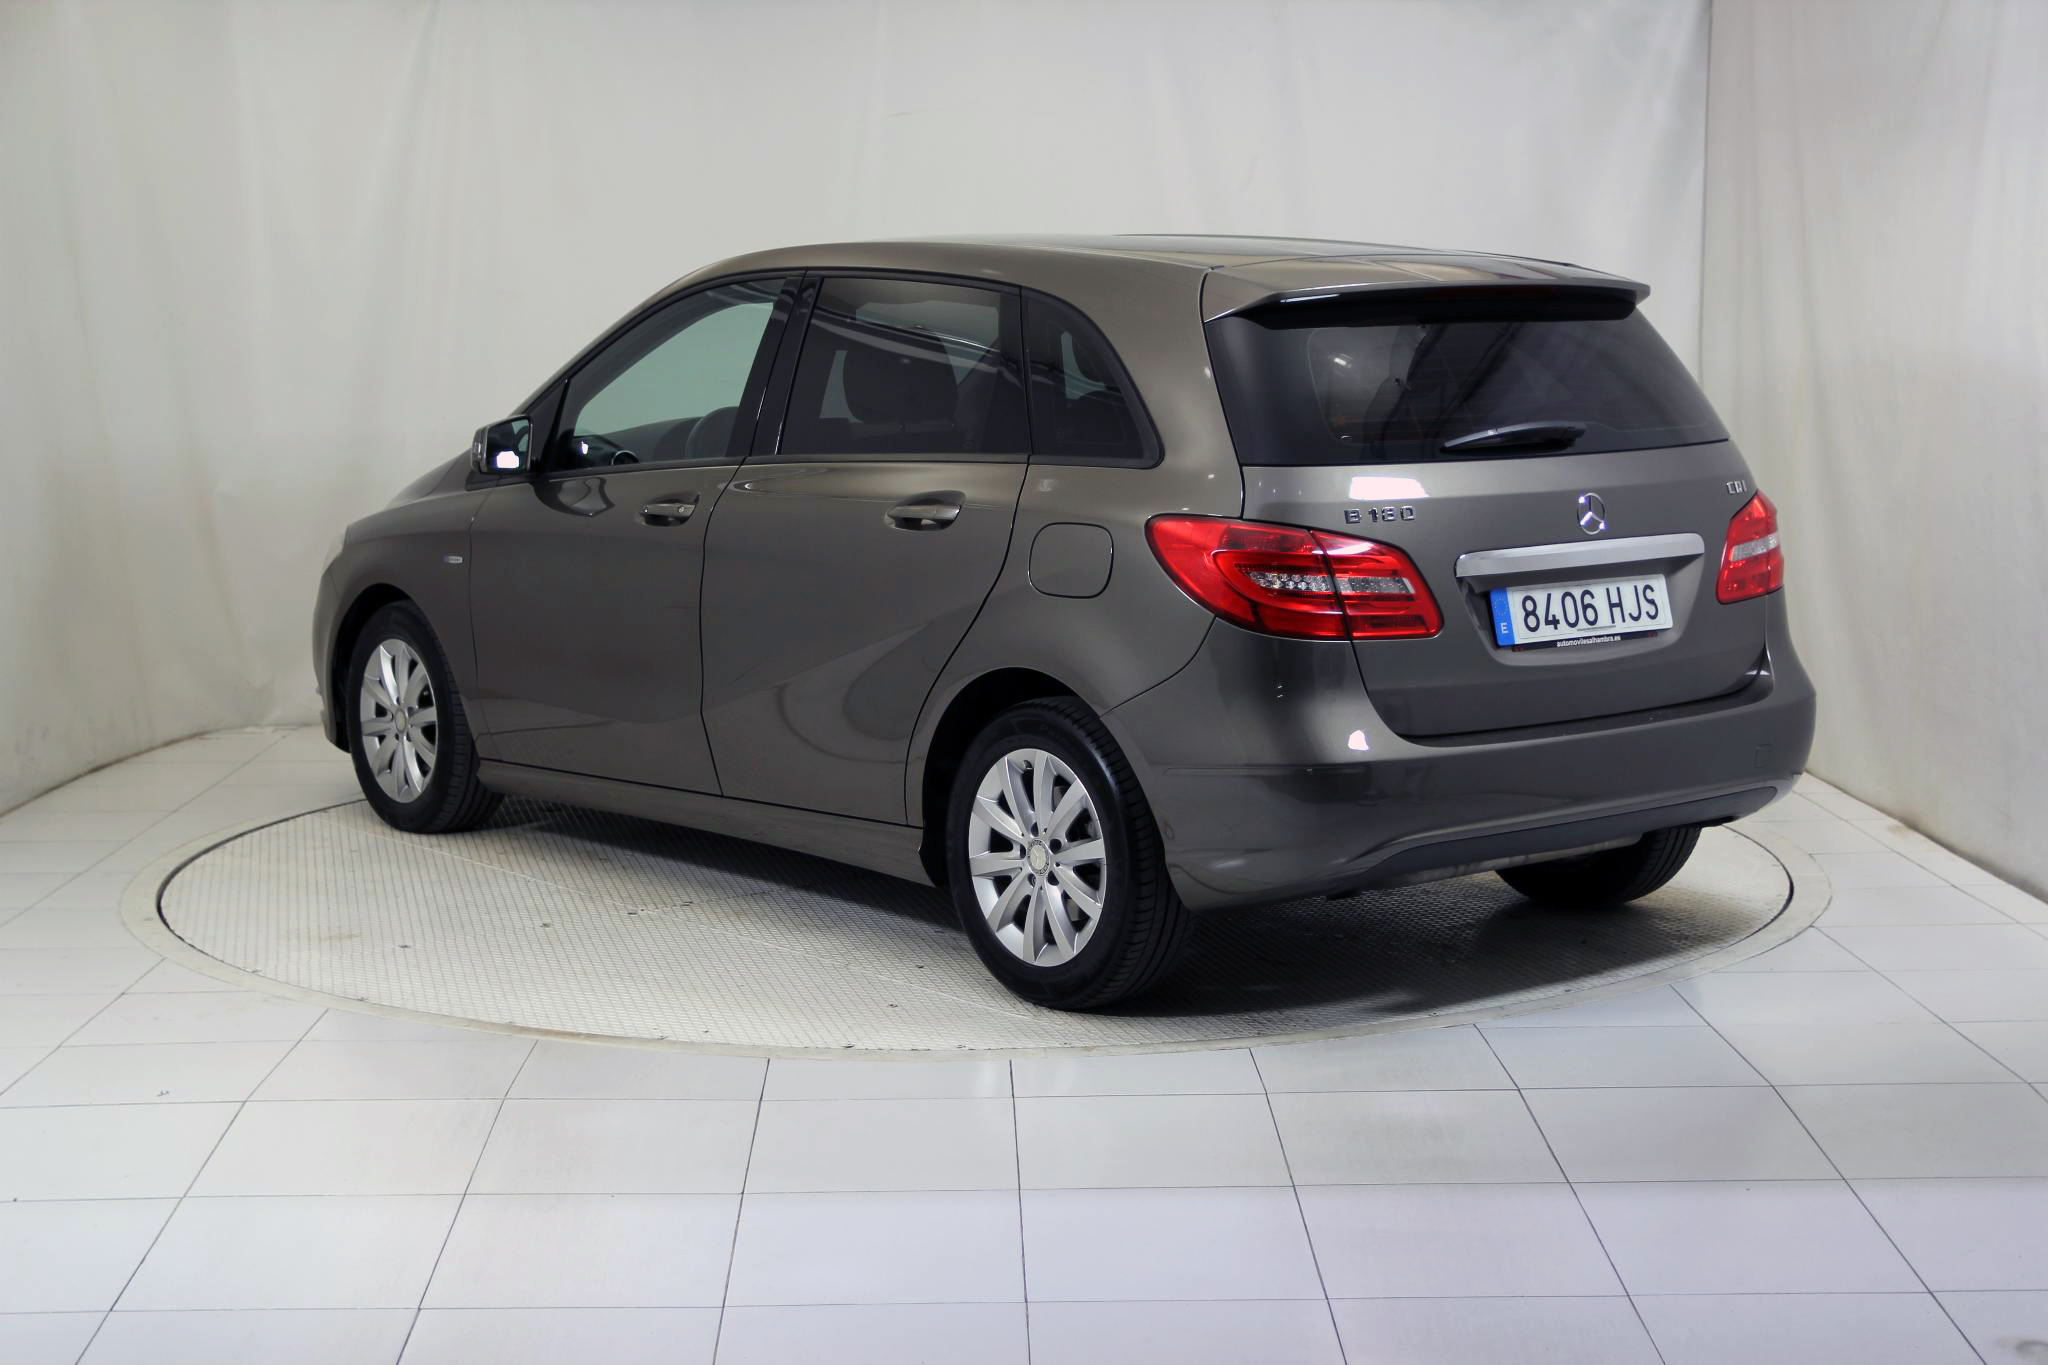 Mercedes-Benz Clase B CLASE B 180 CDI BLUE EFFICIENCY 5P imagen 8